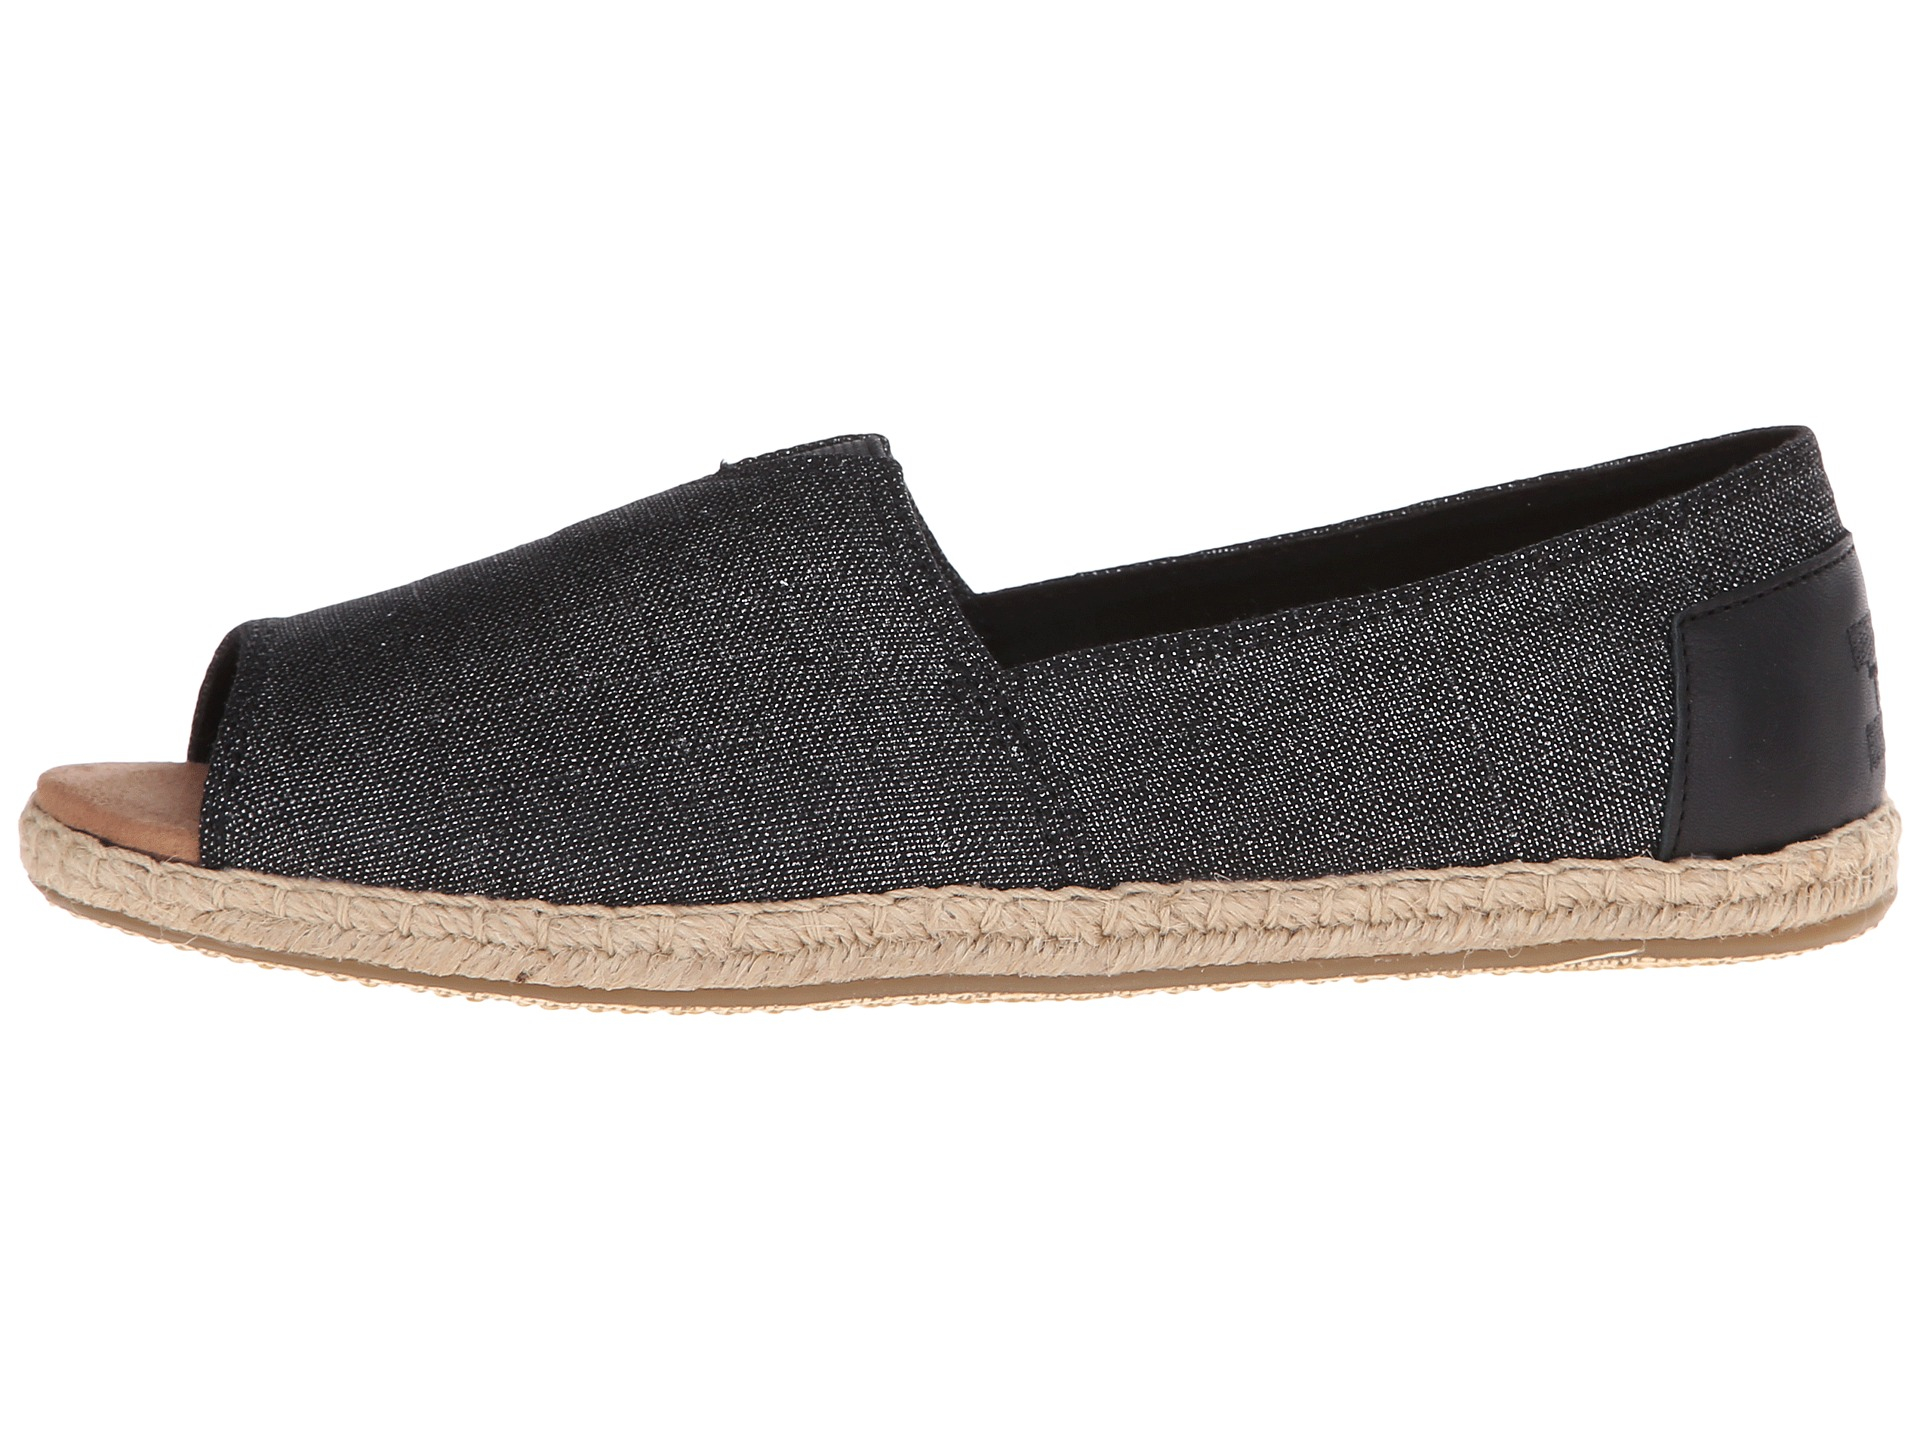 Where To Get Toms Shoes On Sale